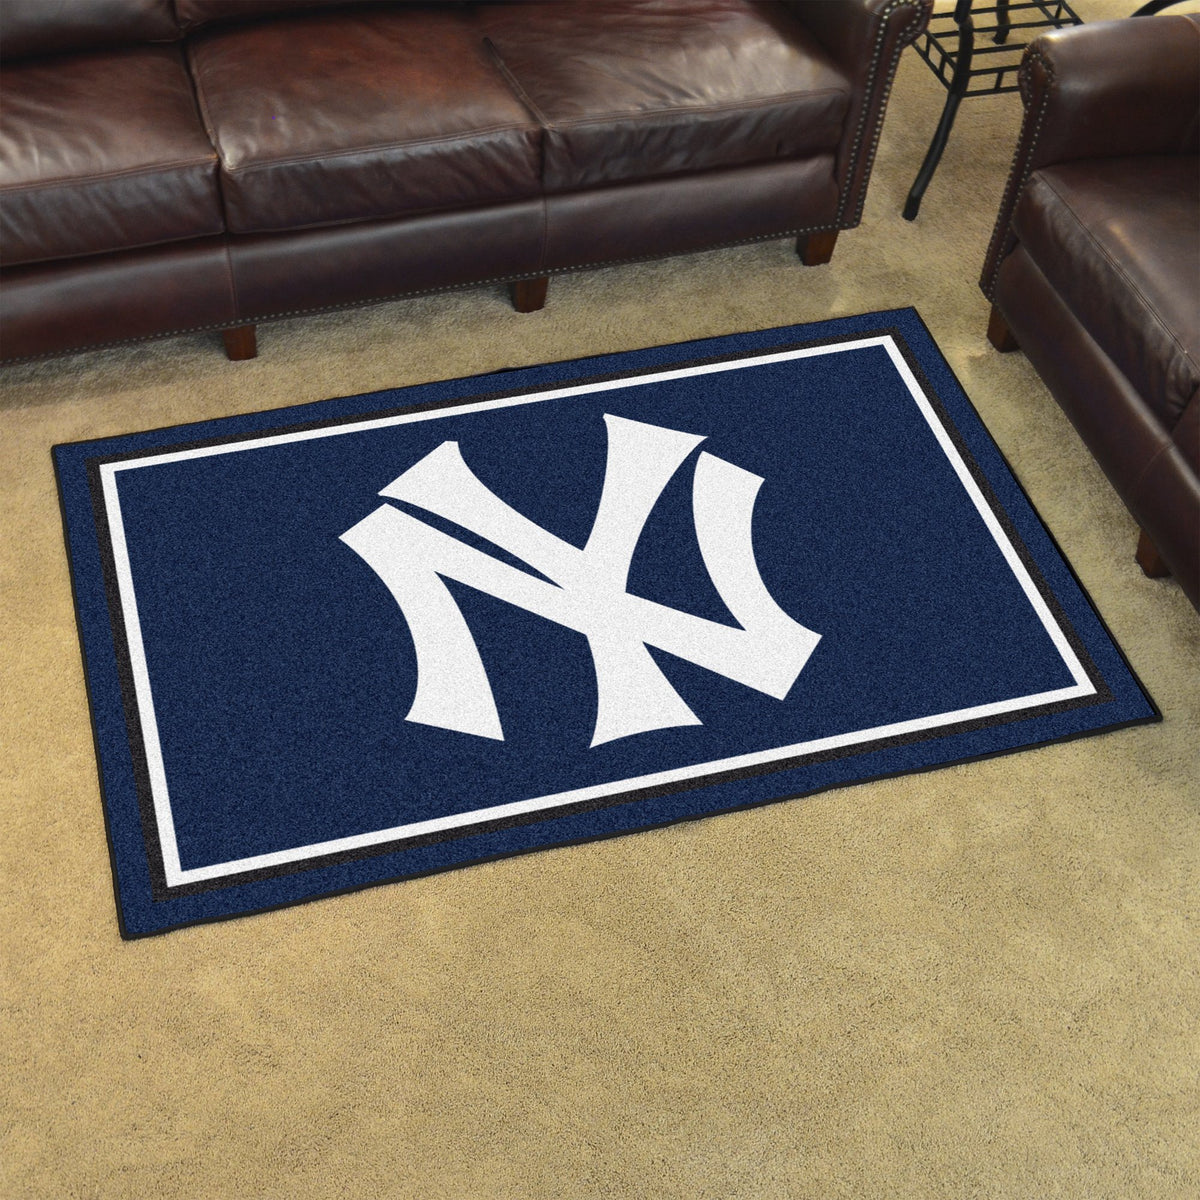 MLB Retro - 4' x 6' Rug MLB Retro Mats, Plush Rugs, 4x6 Rug, MLB, Home Fan Mats New York Yankees